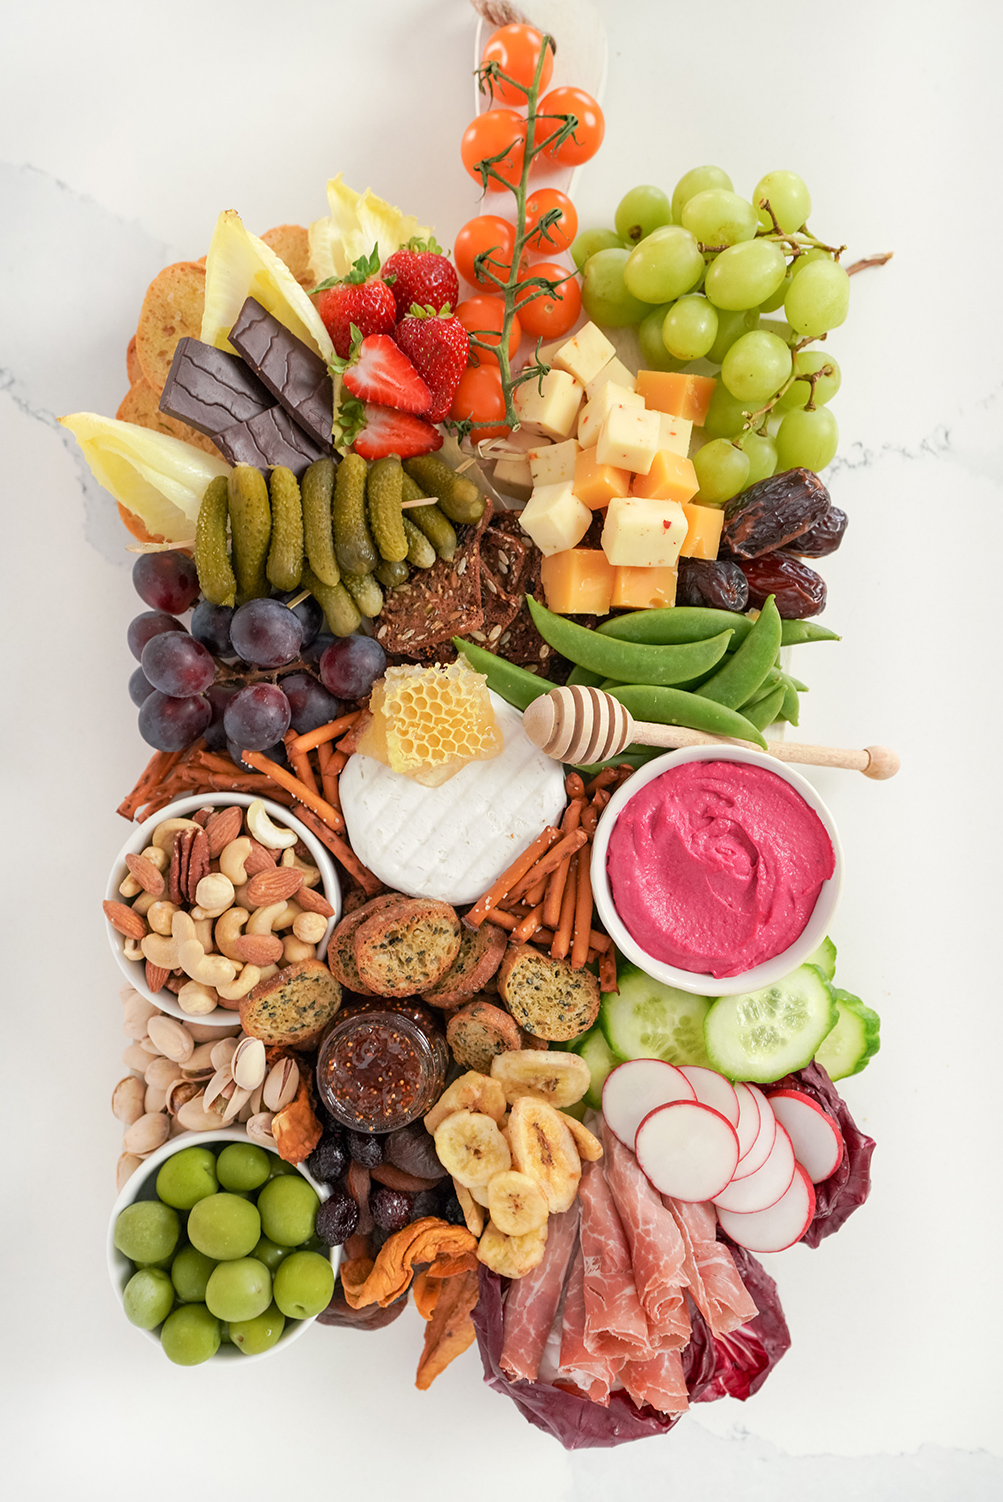 a grazing board containing fruits, veggies, cheese, crackers and cured meat